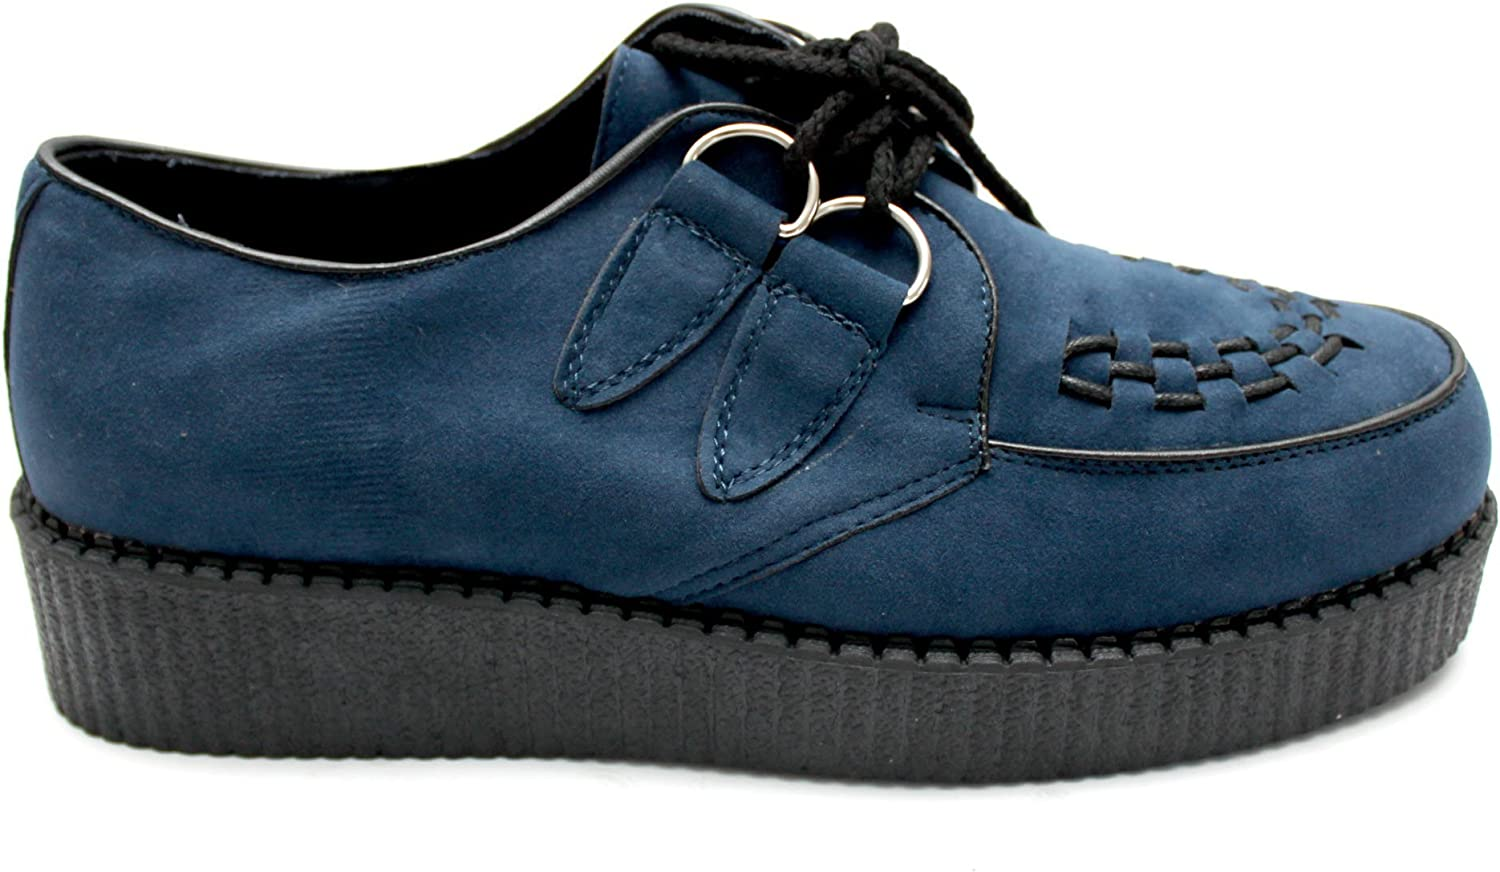 Brothel Creepers Shoes Boots Size UK